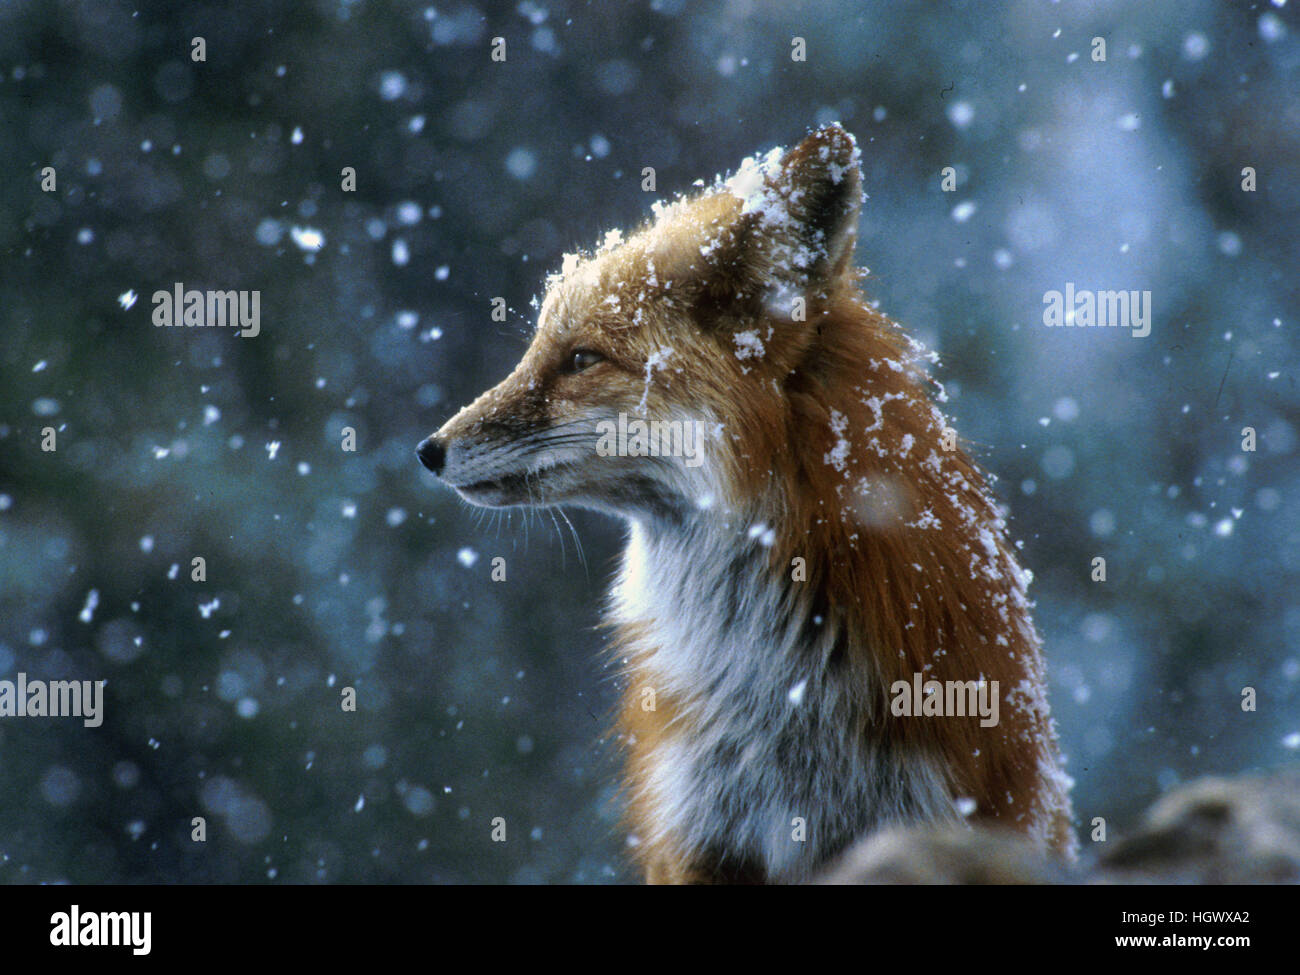 Fox on a snowy day - Stock Image